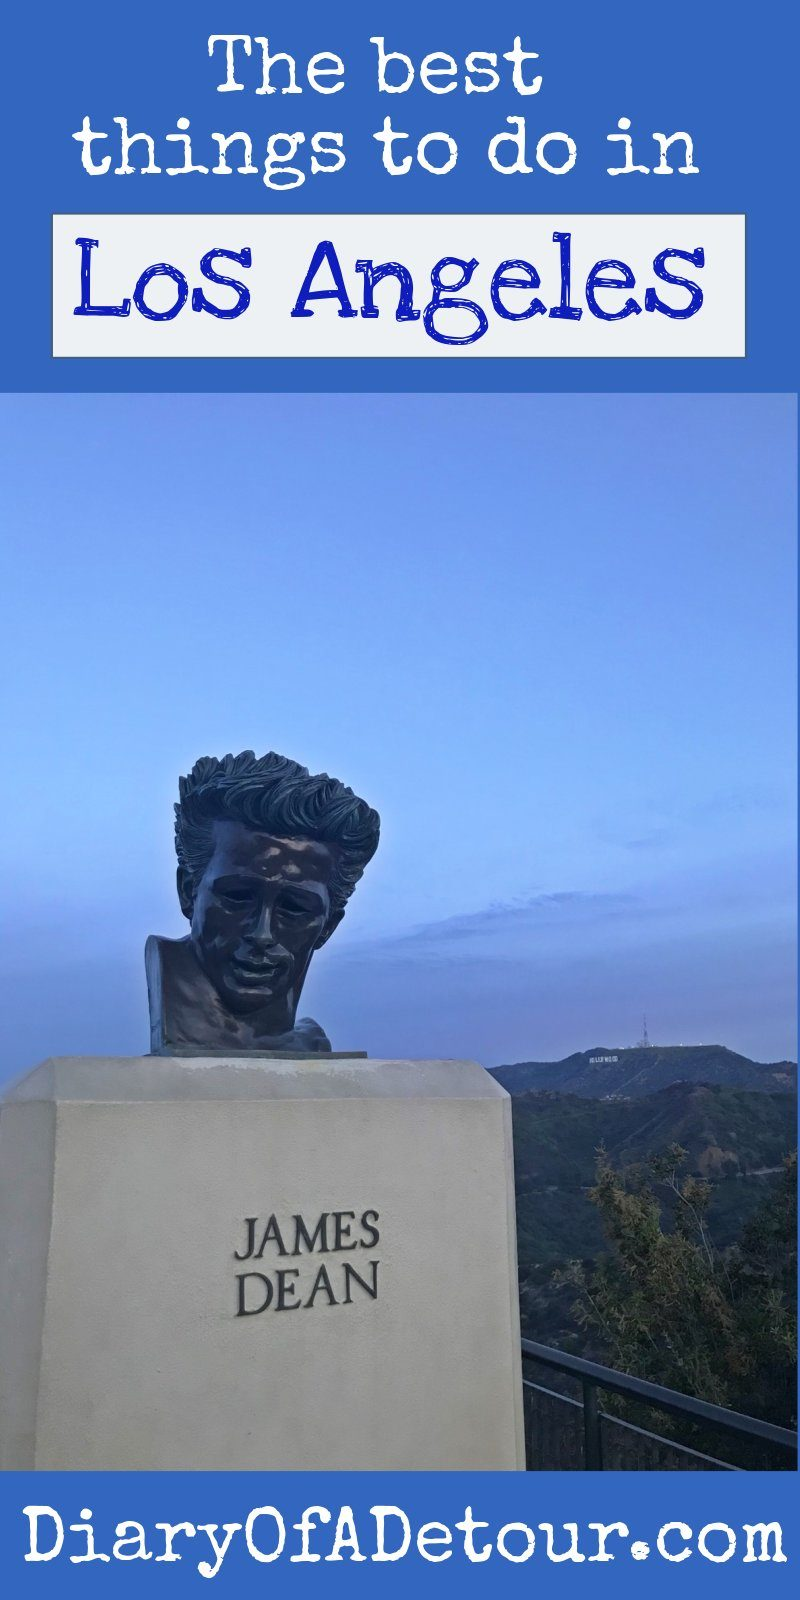 The best things to do in LA main image including James Dean bust at Griffith Observatory